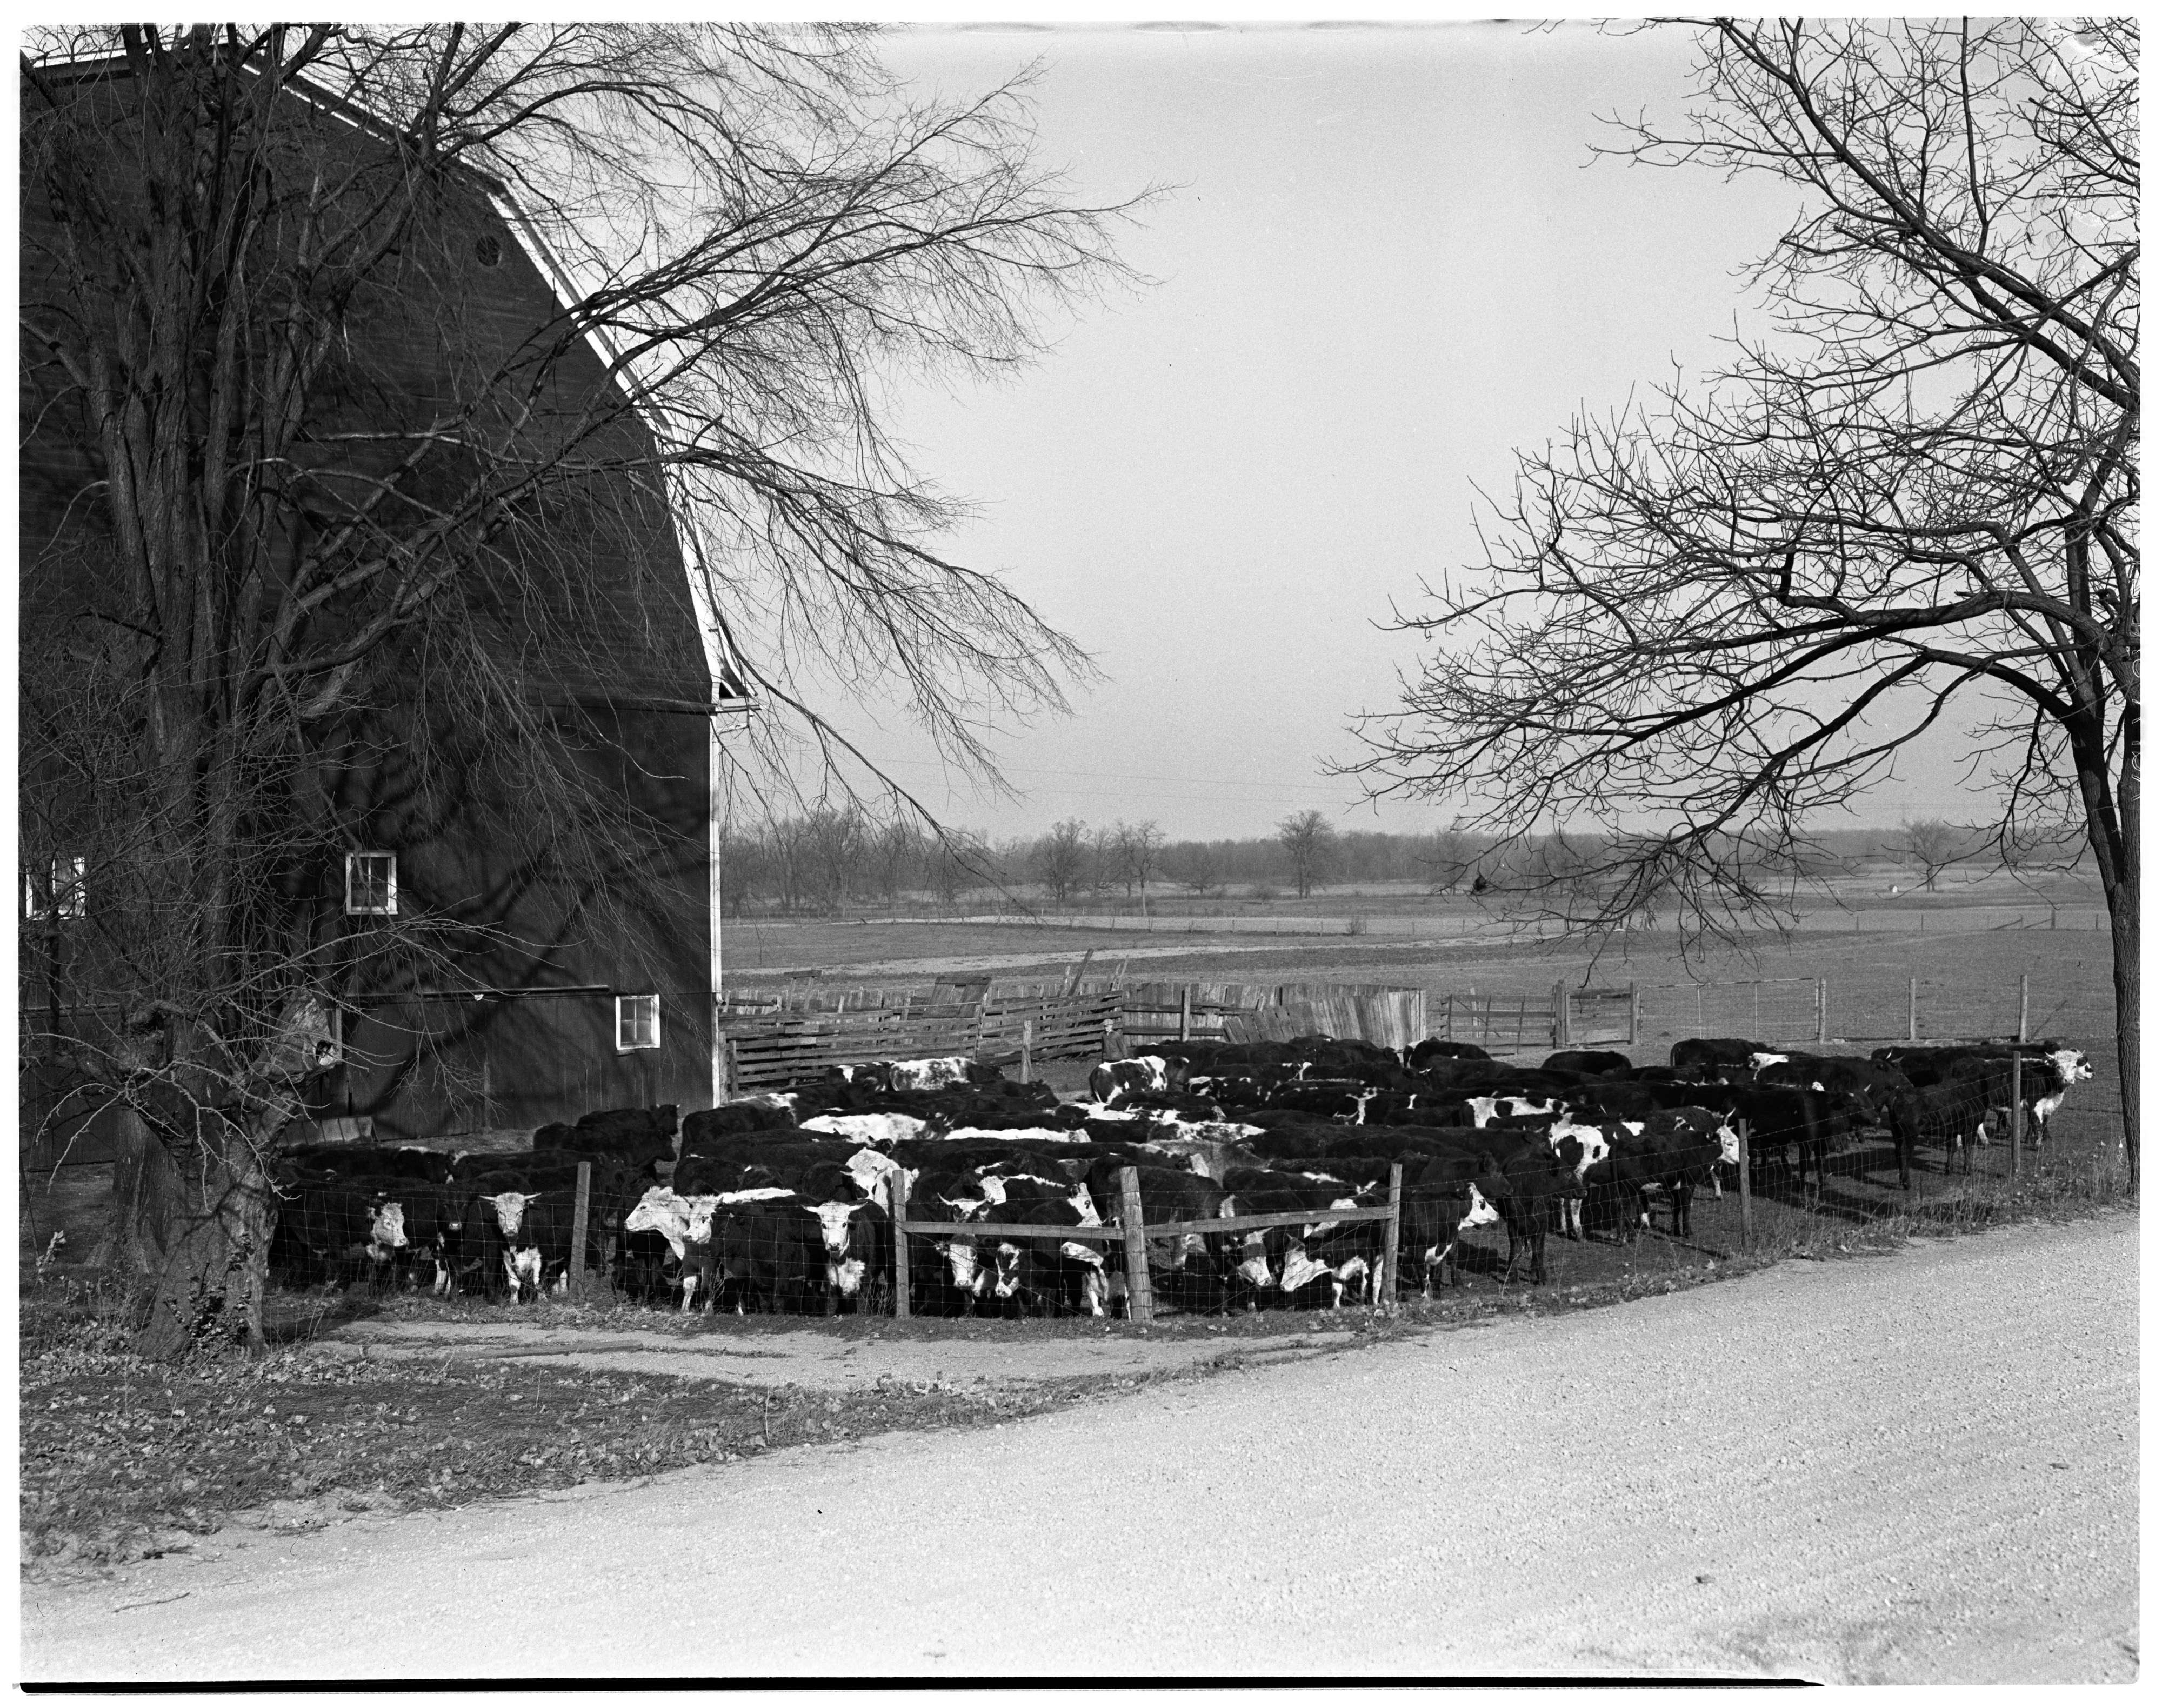 George Henning's Cattle, November 1936 image